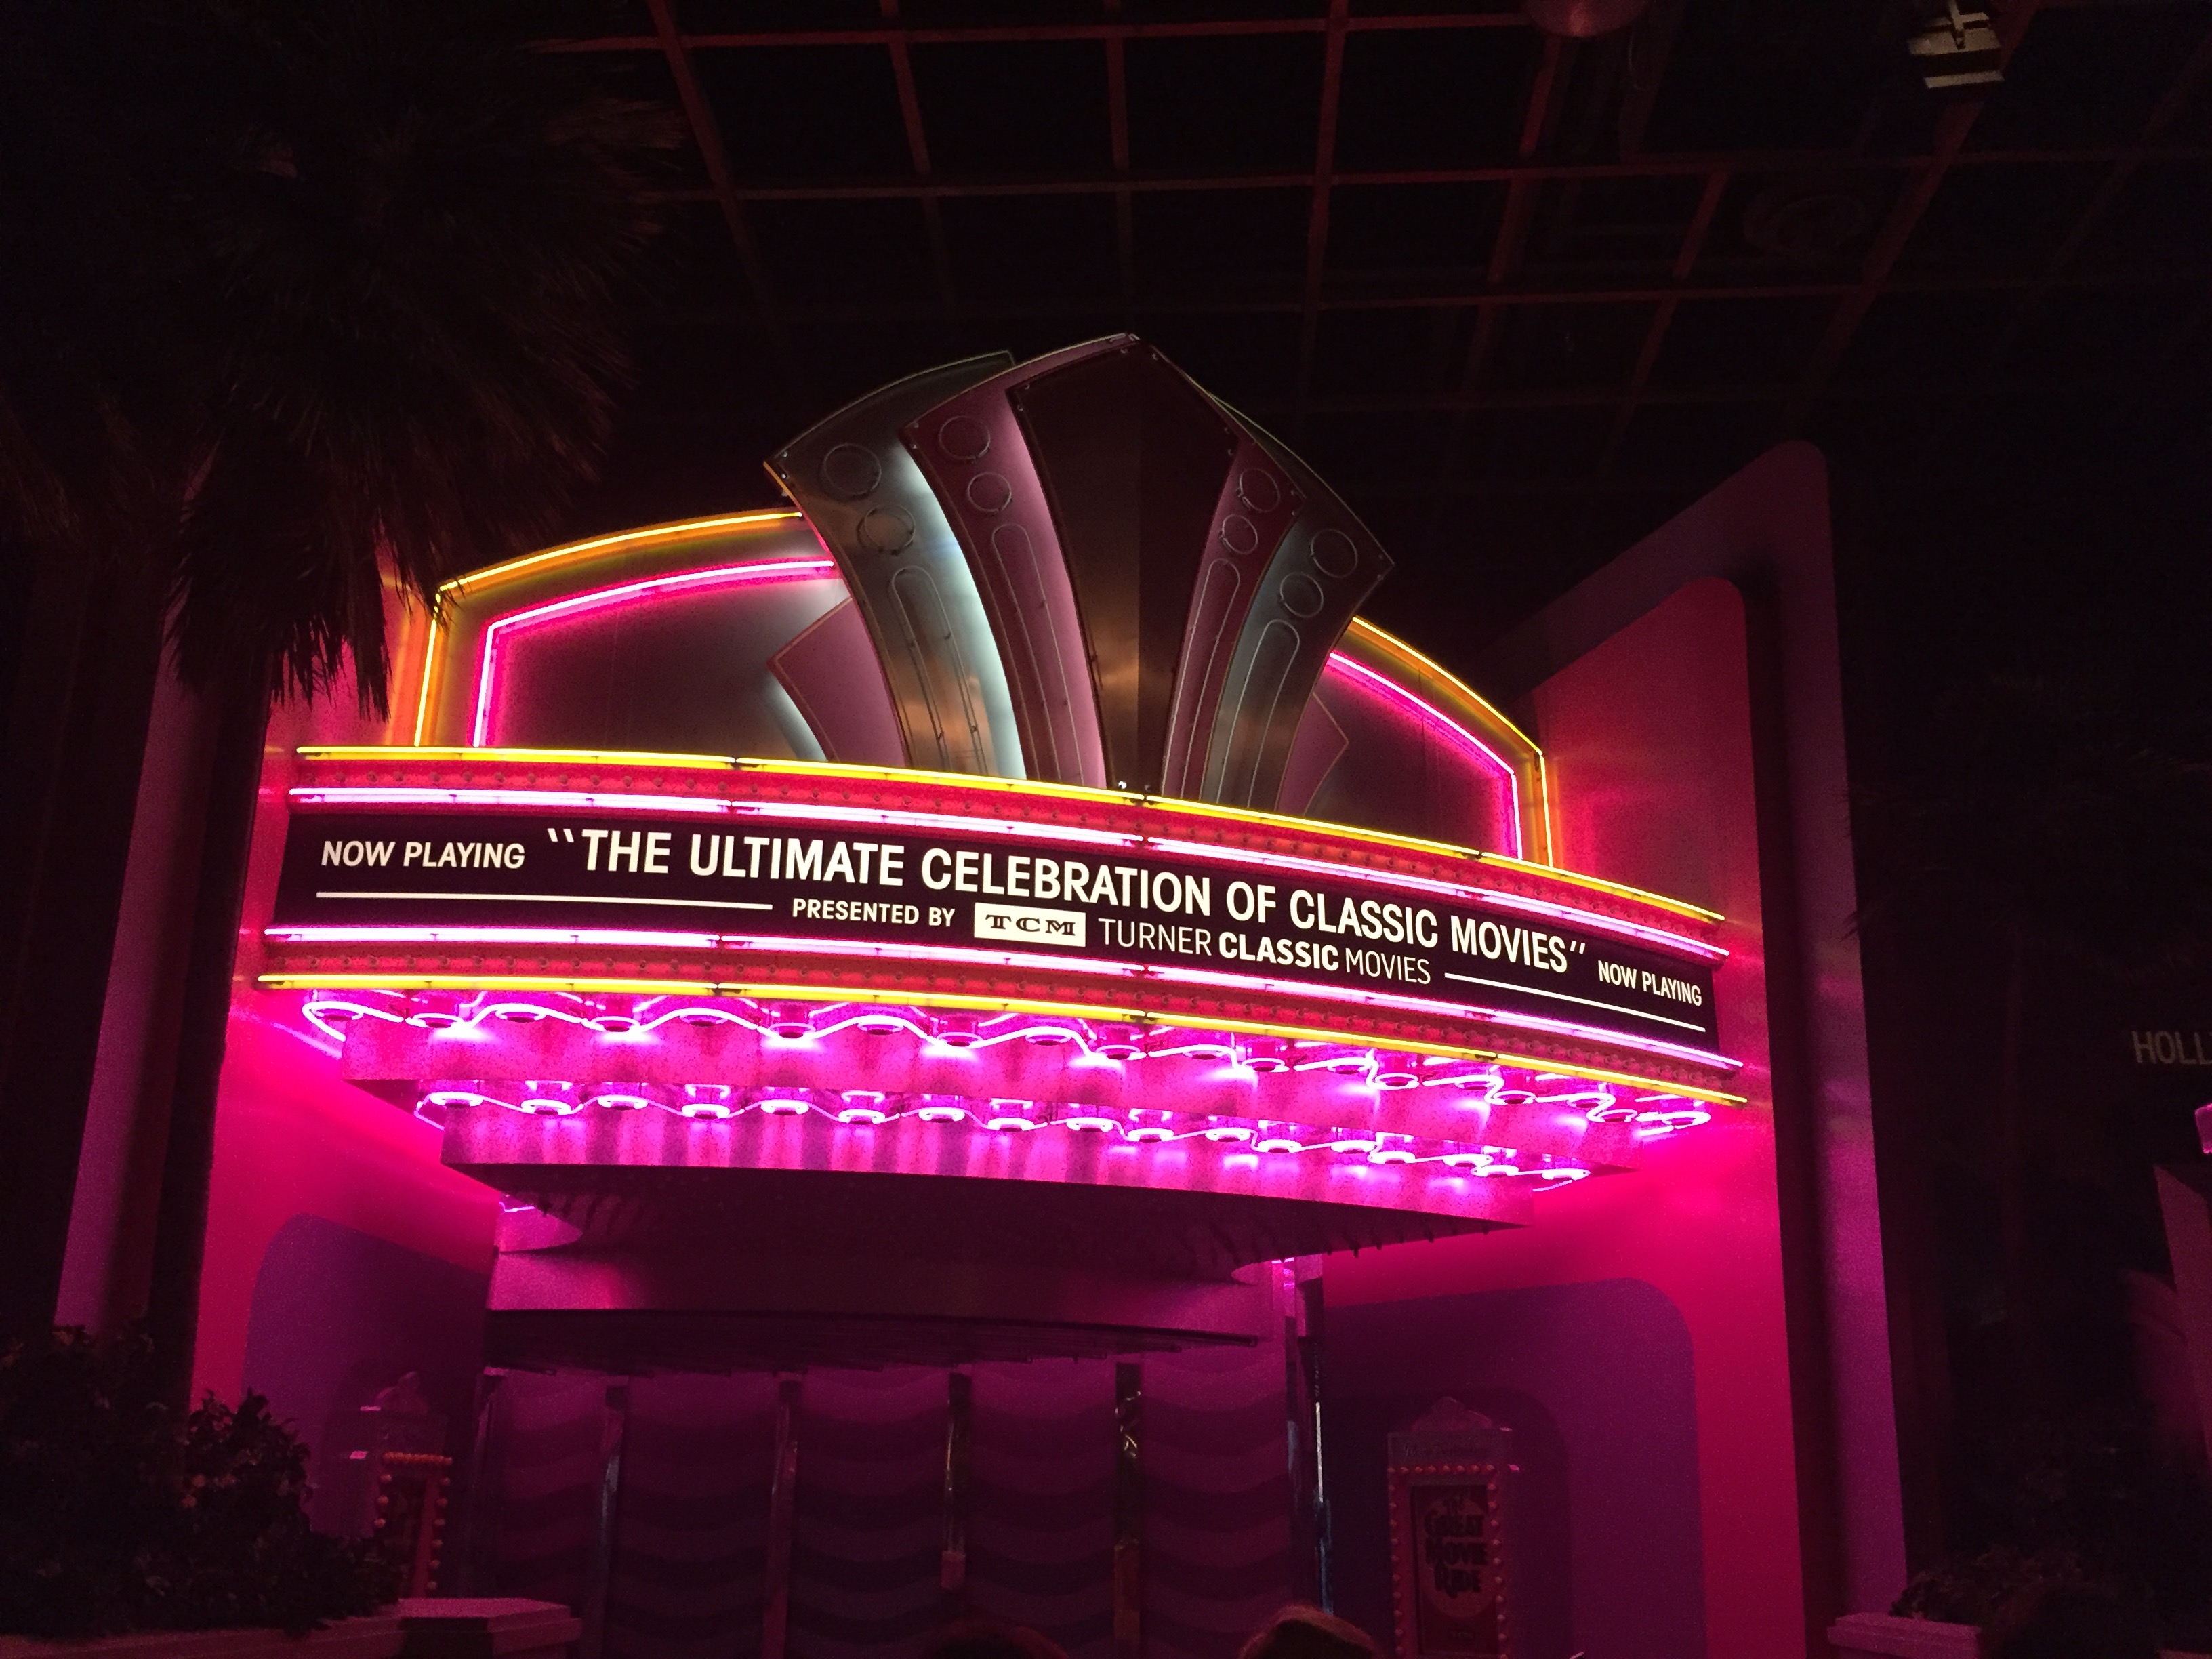 Say Goodbye To The Great Movie Ride…